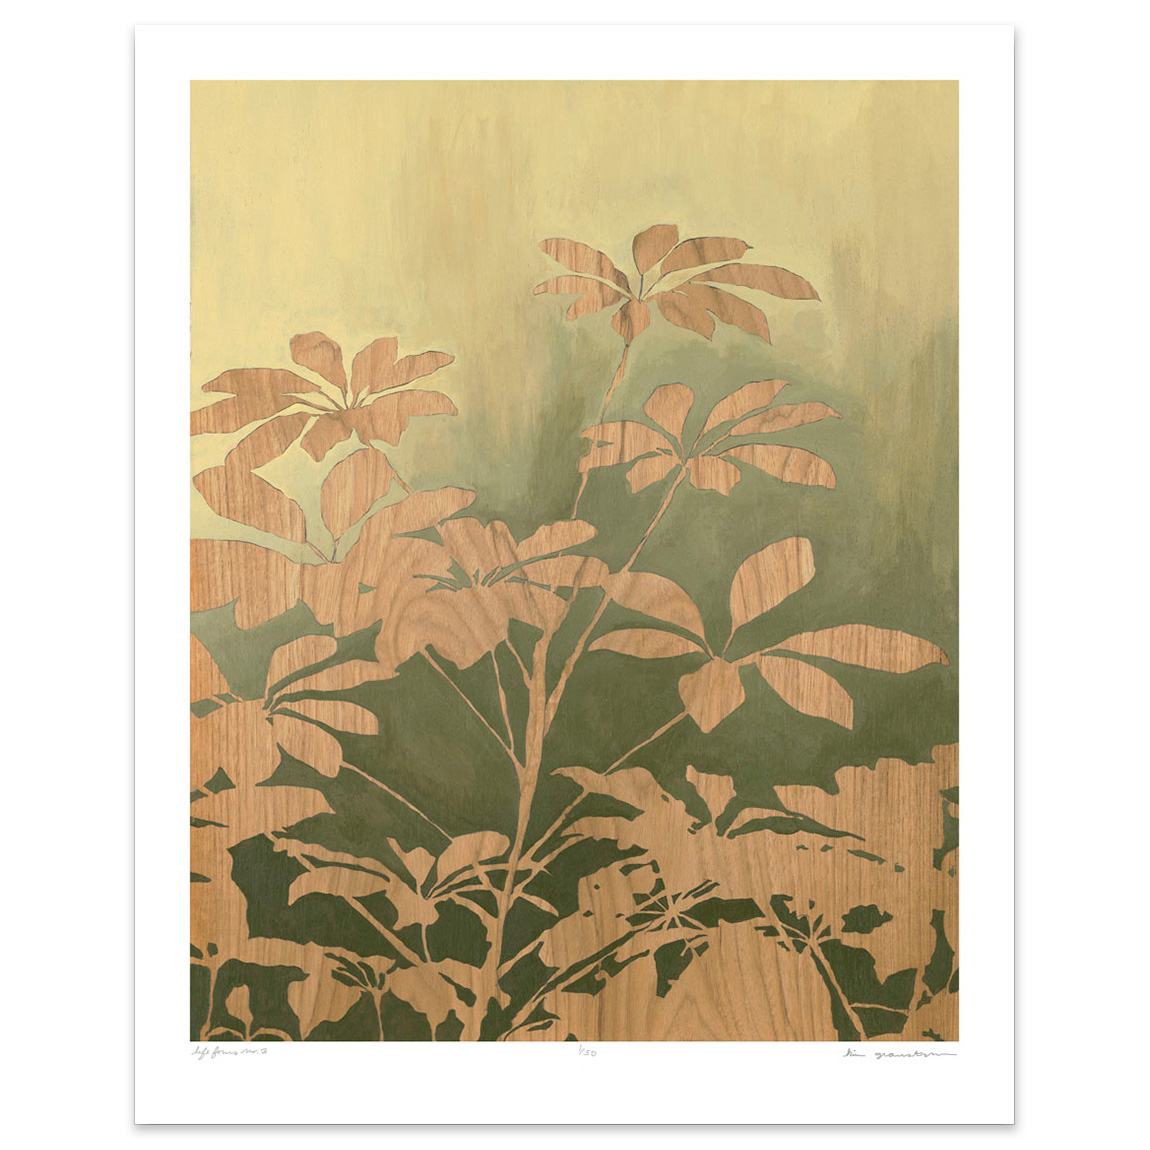 Life Forms No. 3 - 8 x 10 botanical print